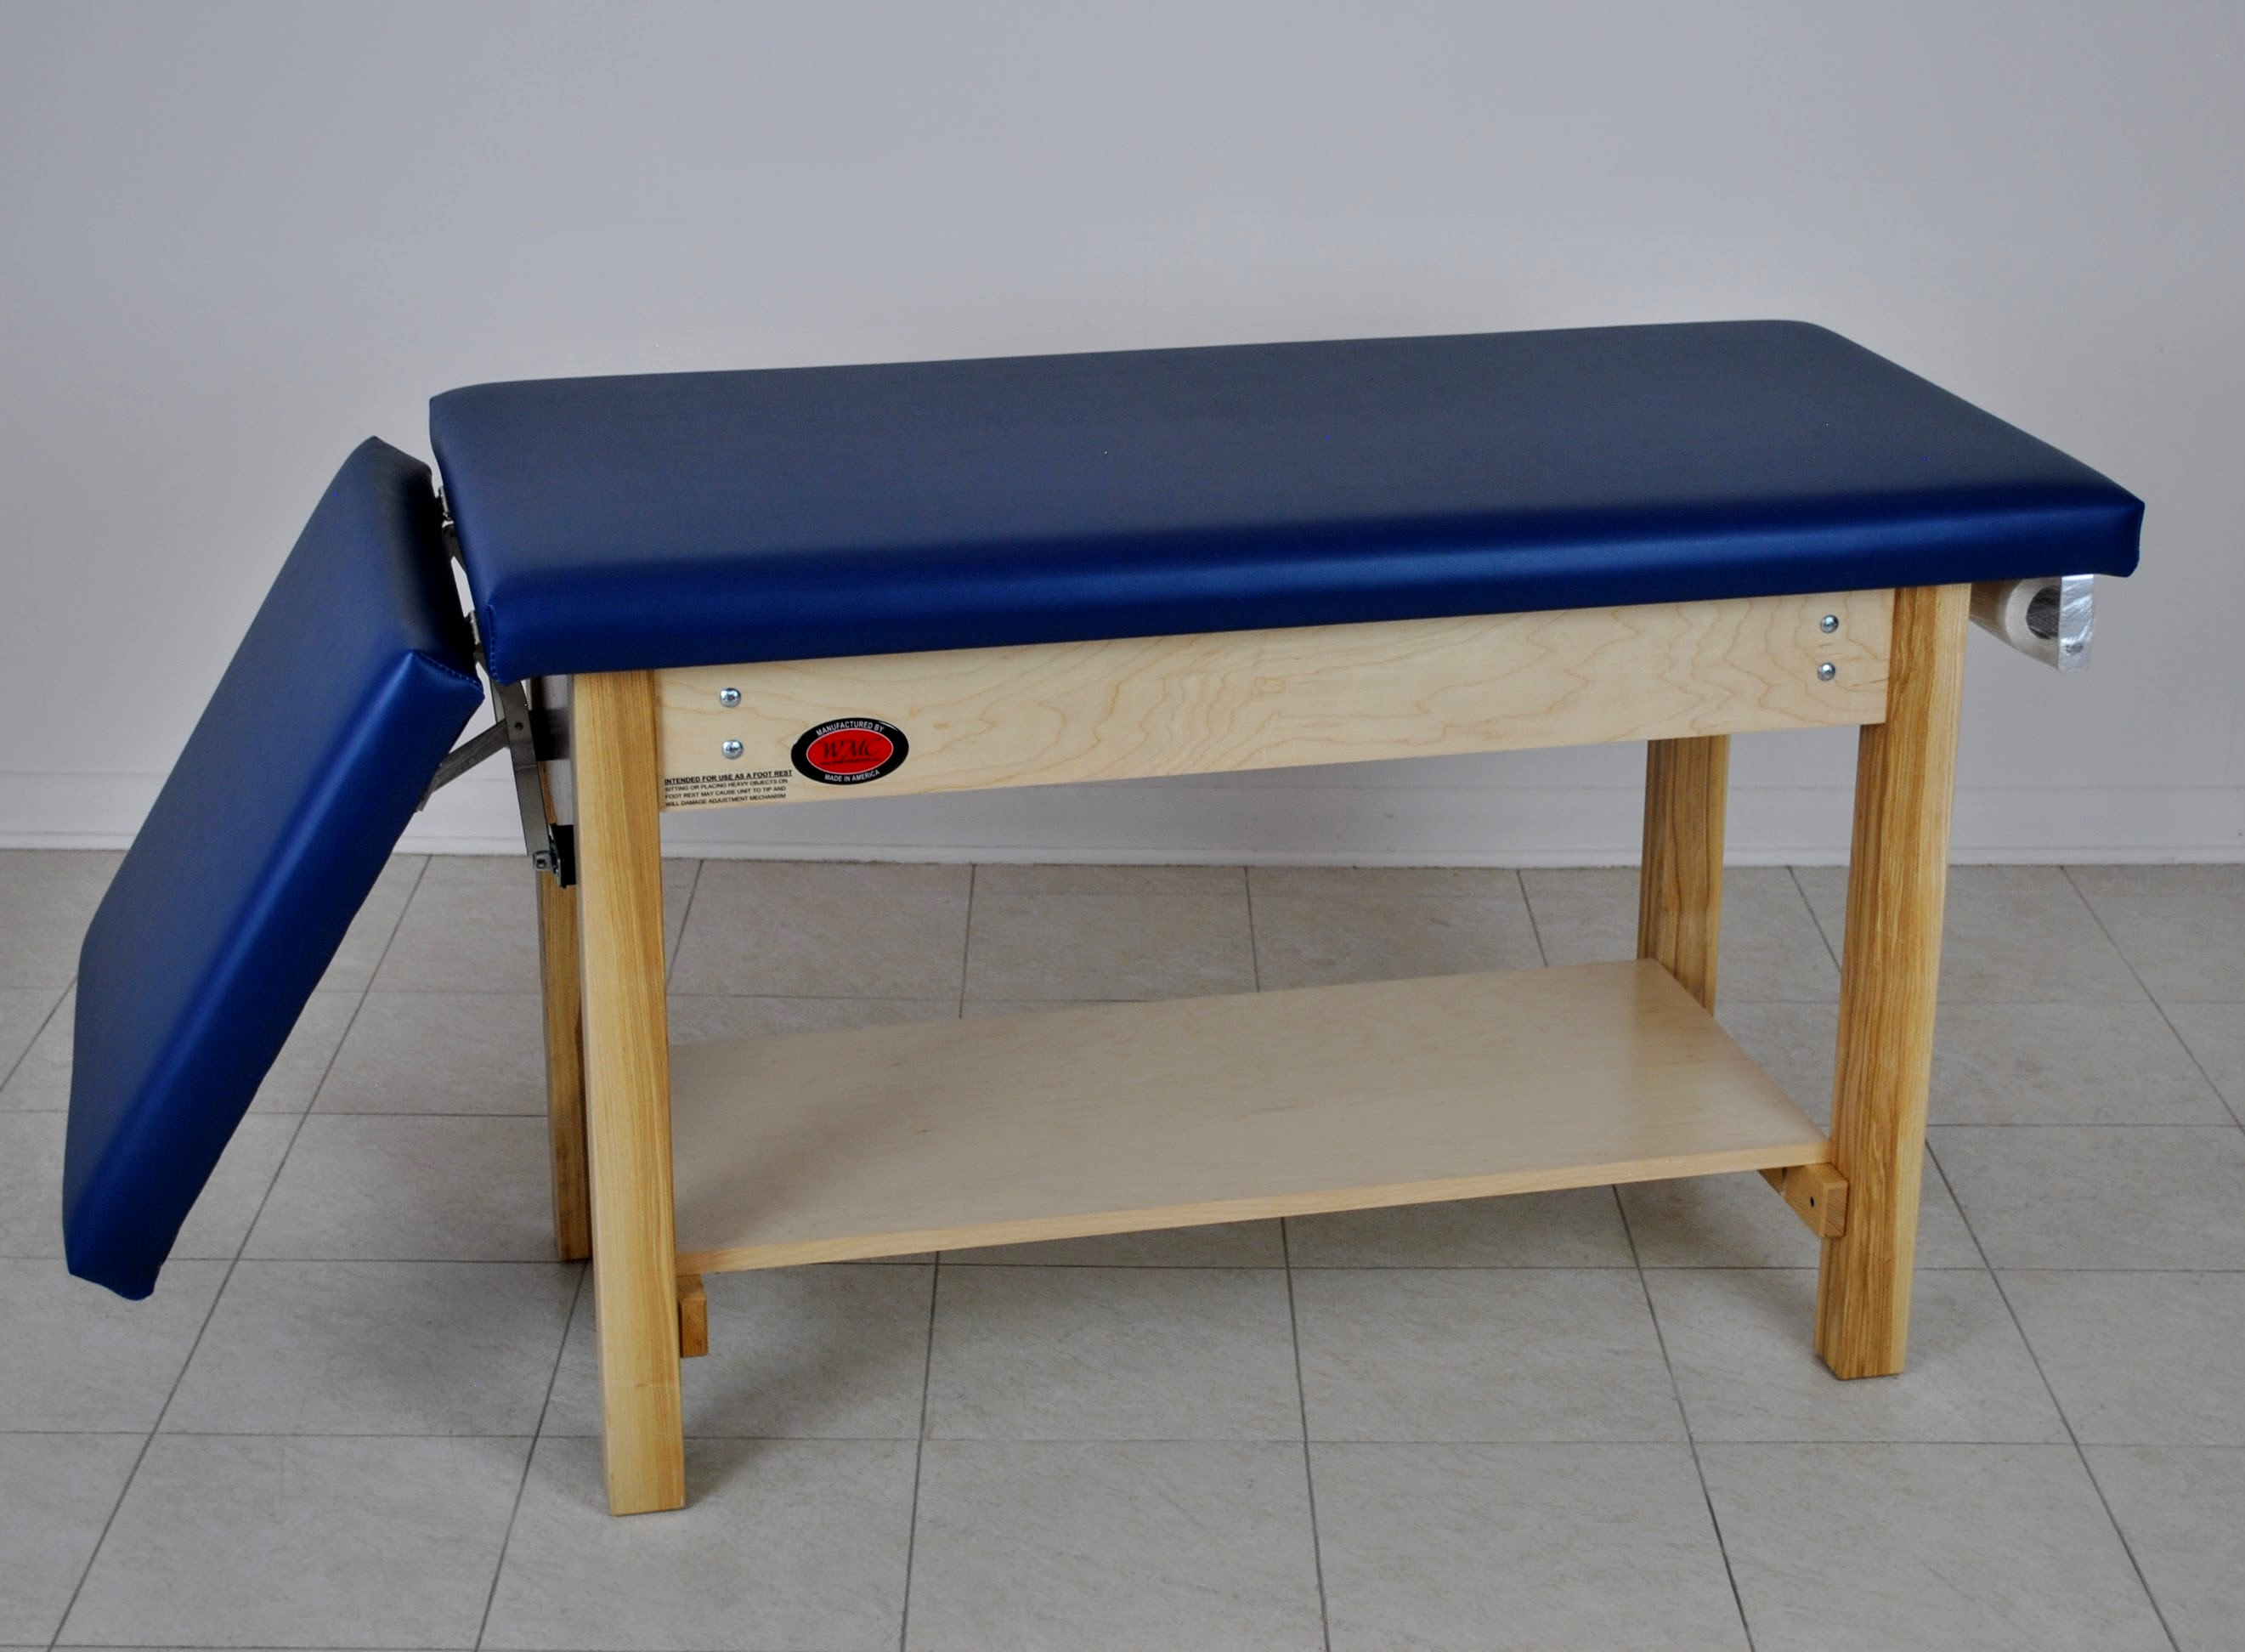 Pleasant Model 7200 Space Saver Exam Table With Footrest Wmc Inc Short Links Chair Design For Home Short Linksinfo